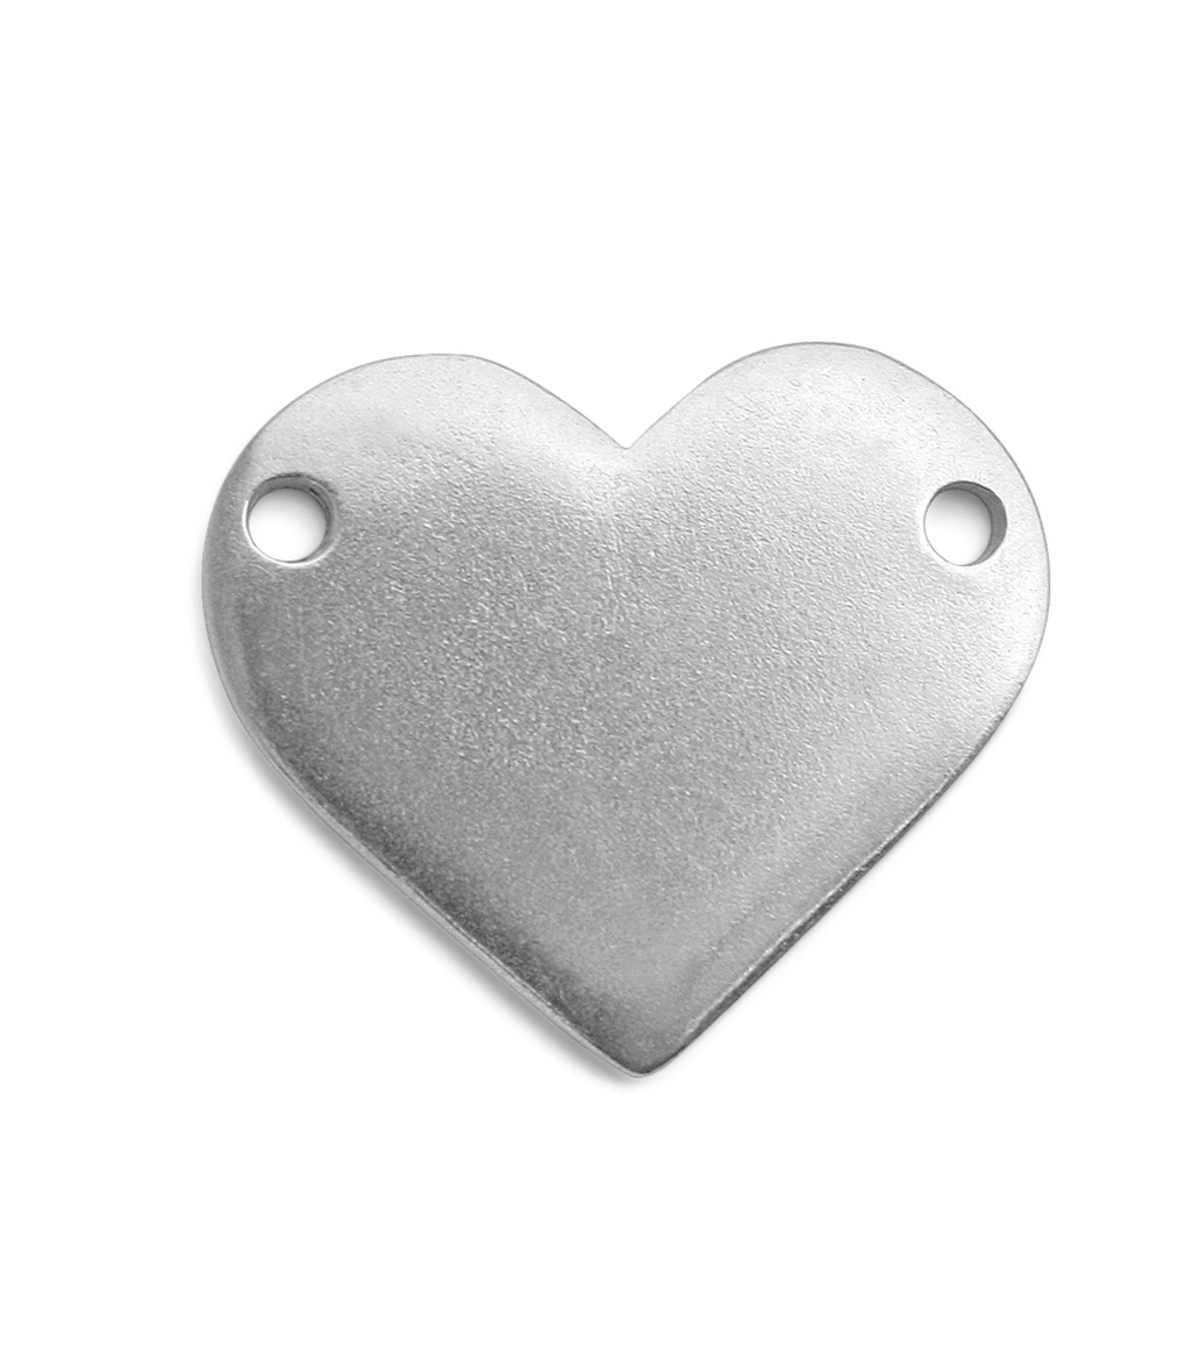 ImpressArt Premium Stamping Blanks 1\u0022 x 7/8\u0022 Heart with Holes Pewter